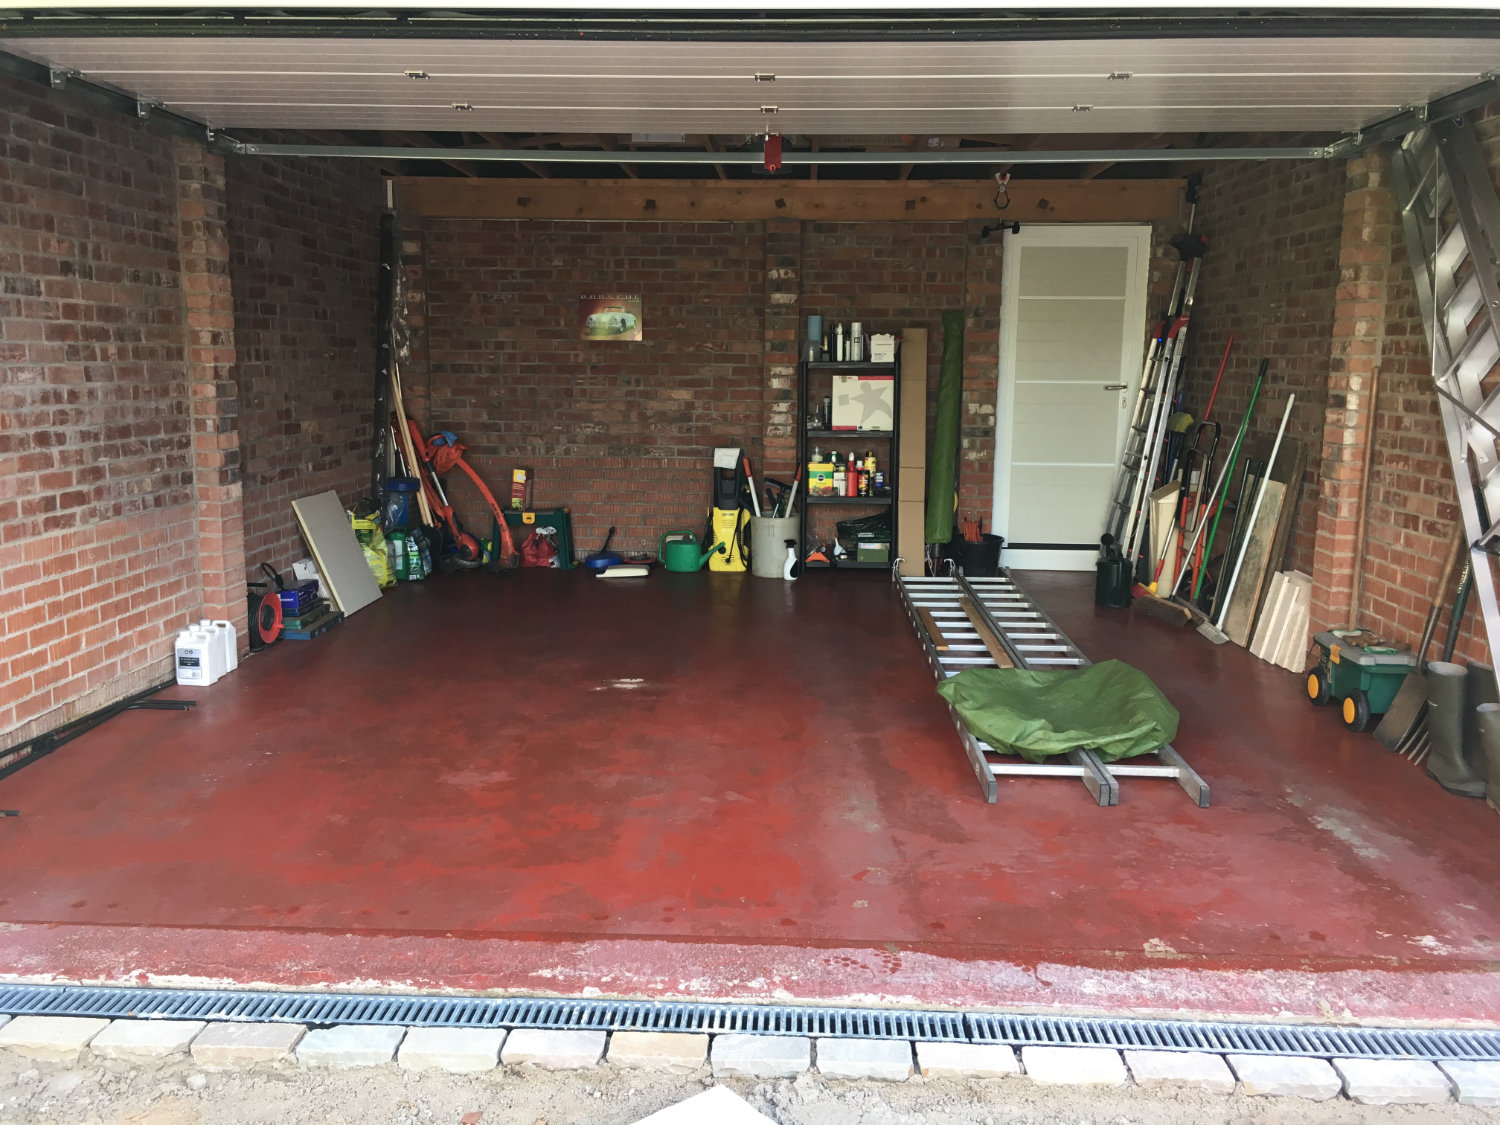 A customer's Cheshire garage before tile installation showing stained and damaged garage floor paint (many of us have been there).